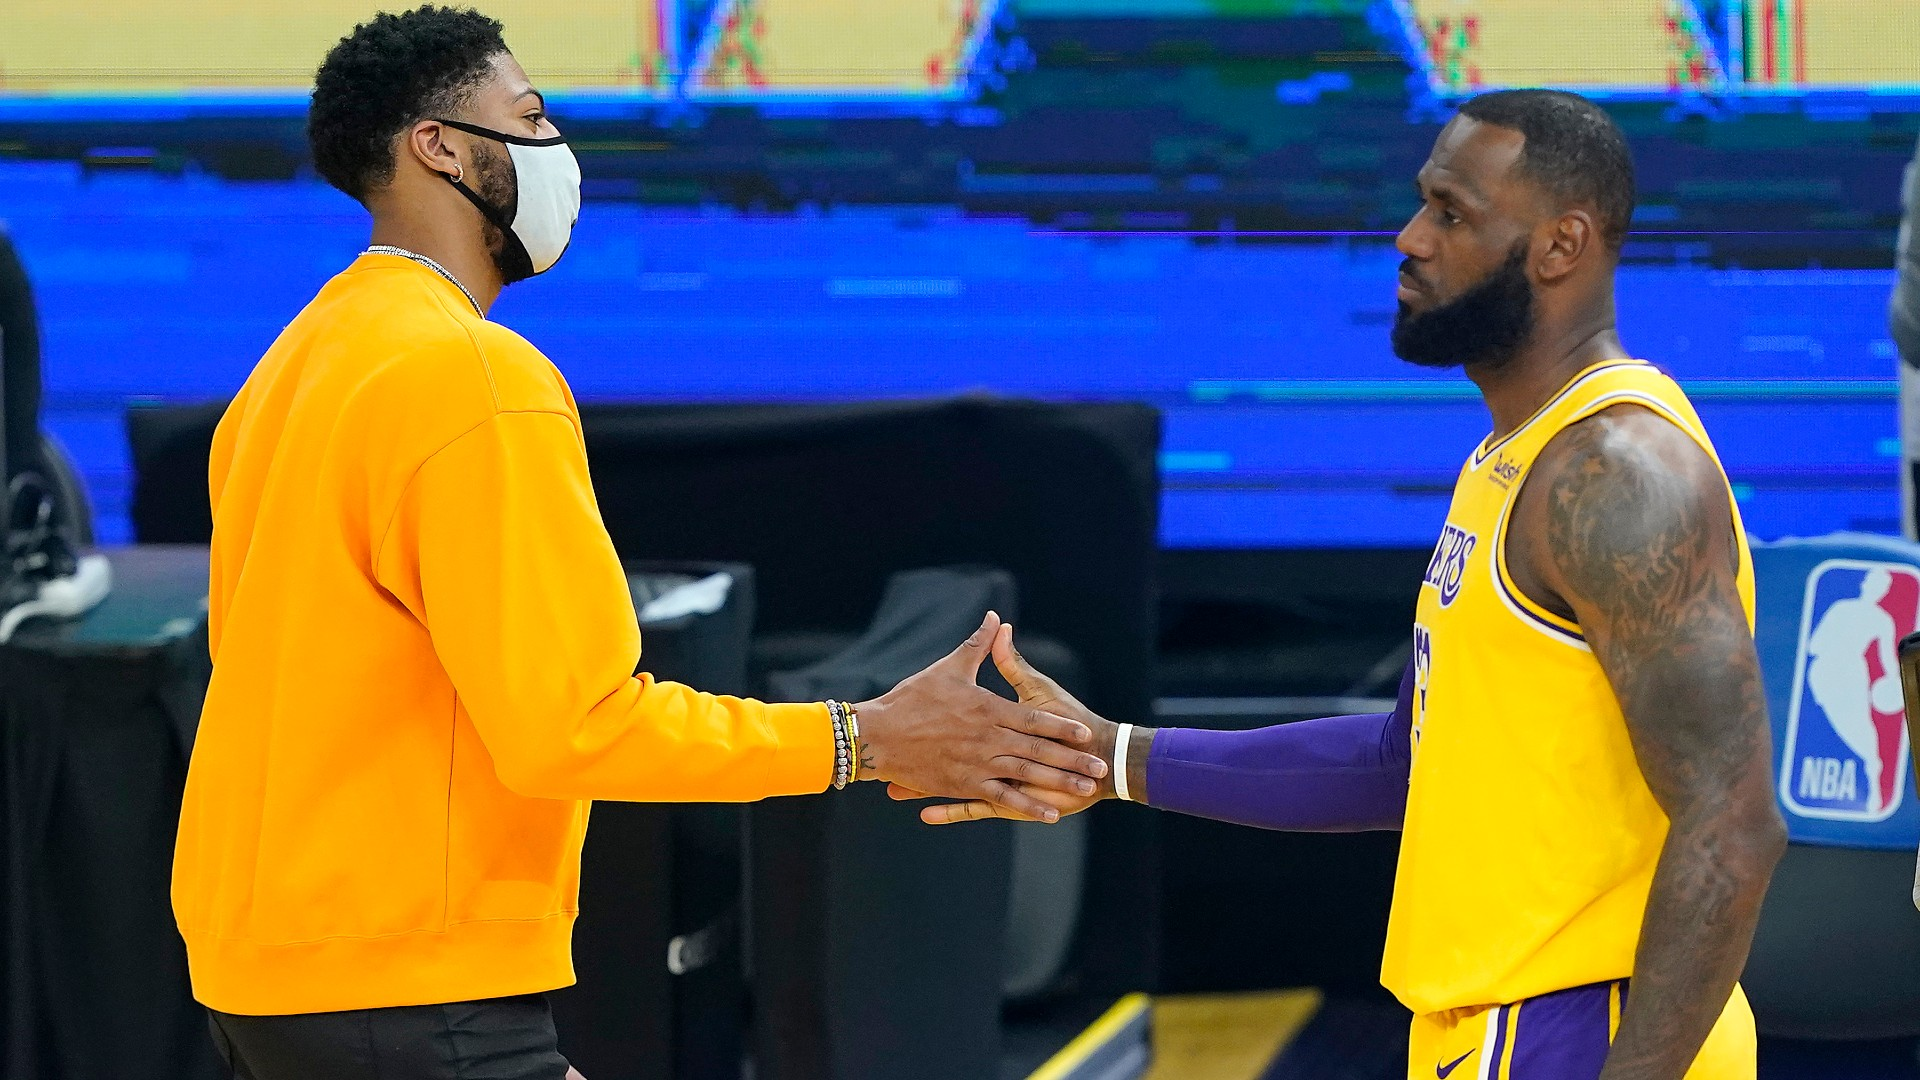 Lakers Injury Updates: Are LeBron James, Anthony Davis Playing Against The Rockets?